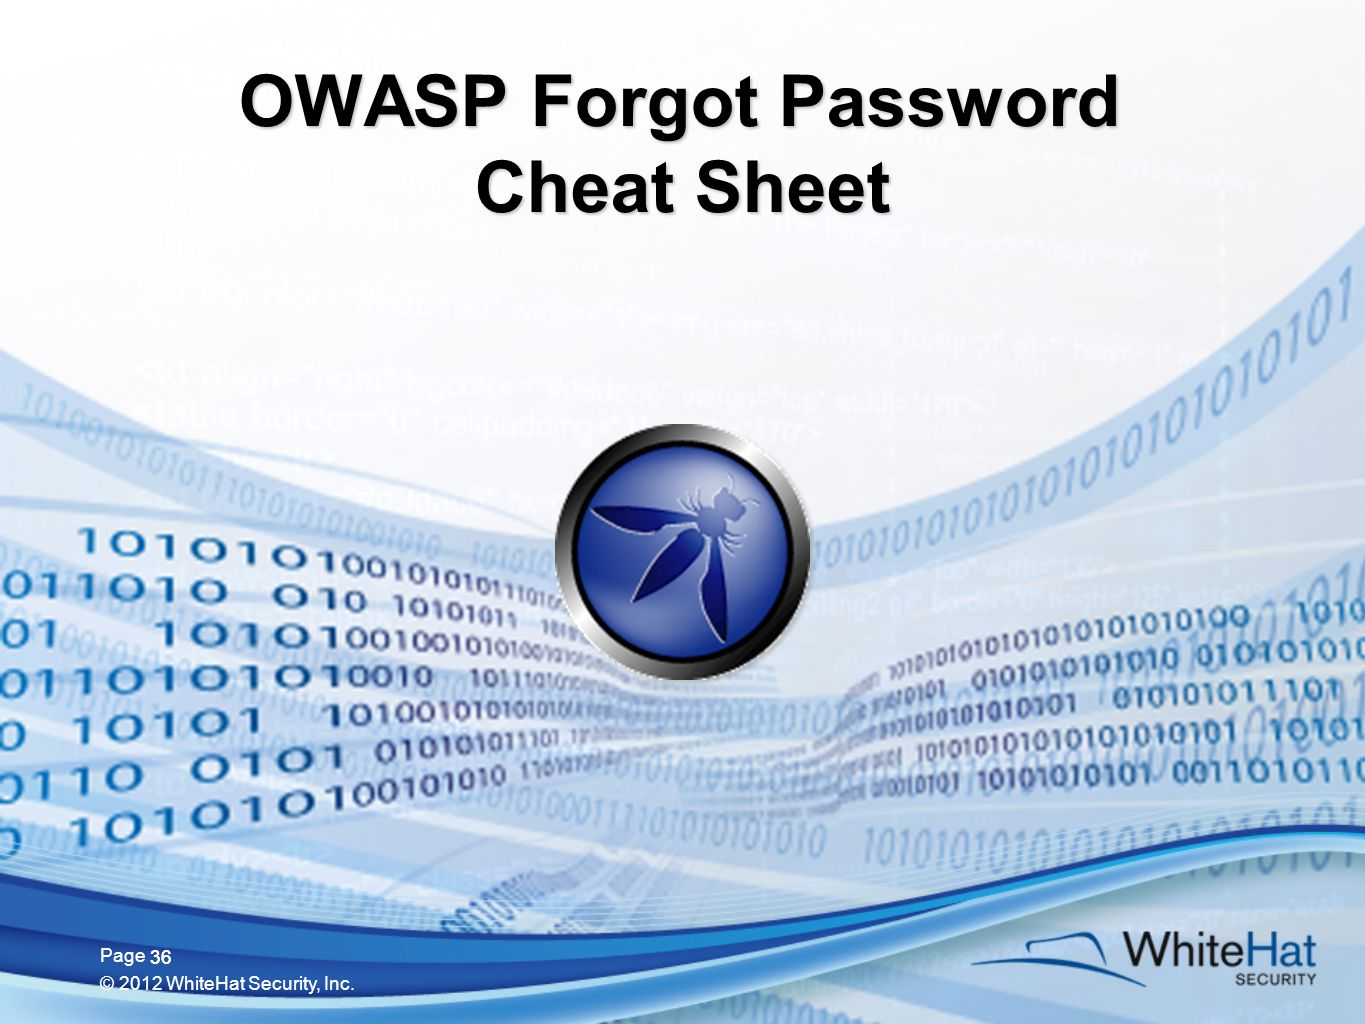 36 Page © 2012 WhiteHat Security, Inc. 36 OWASP Forgot Password Cheat Sheet